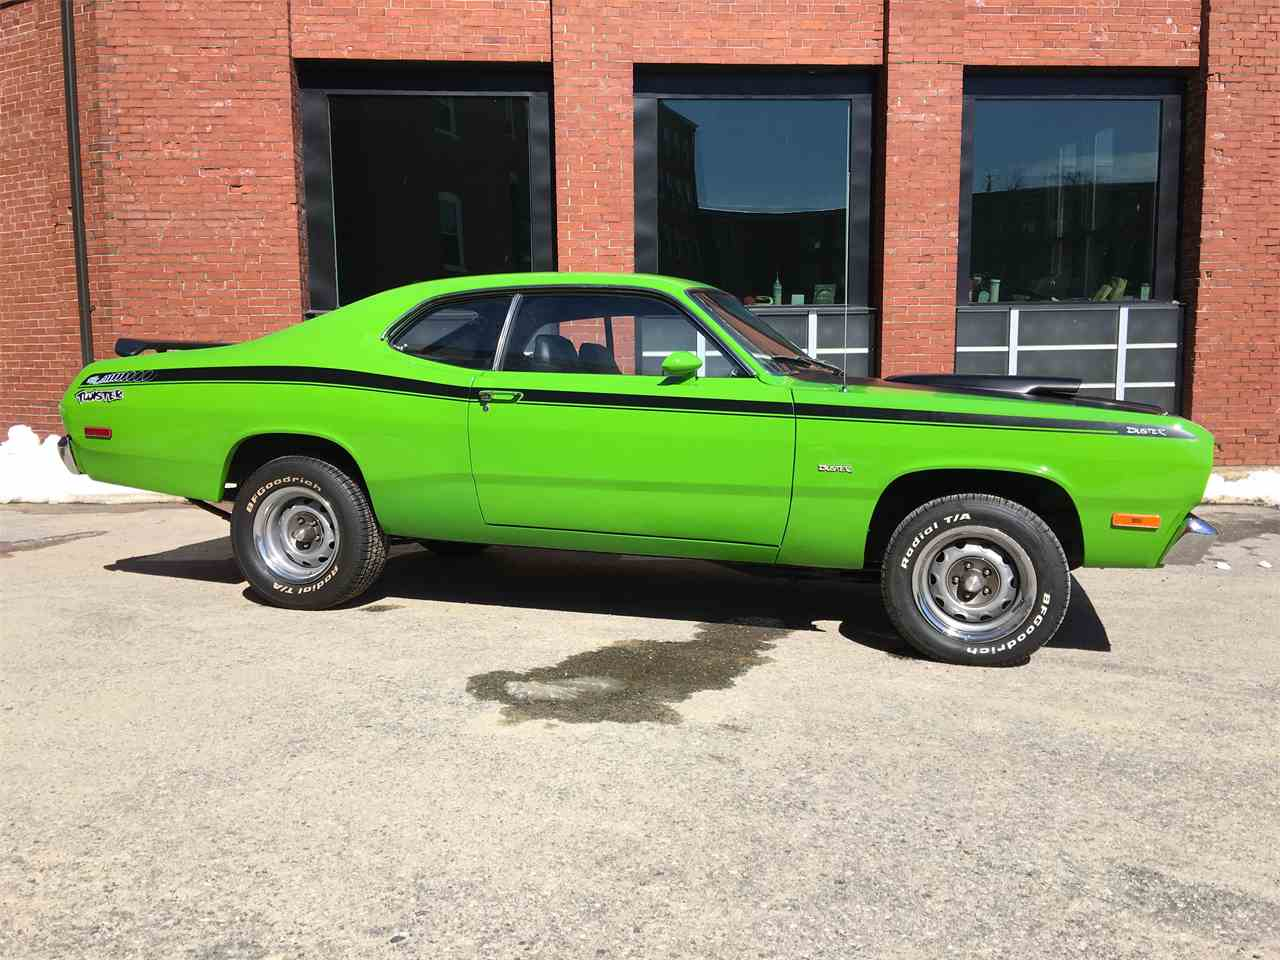 1972 Plymouth Duster Classic Muscle Car For Sale In Mi: 1972 Plymouth Duster 340 For Sale